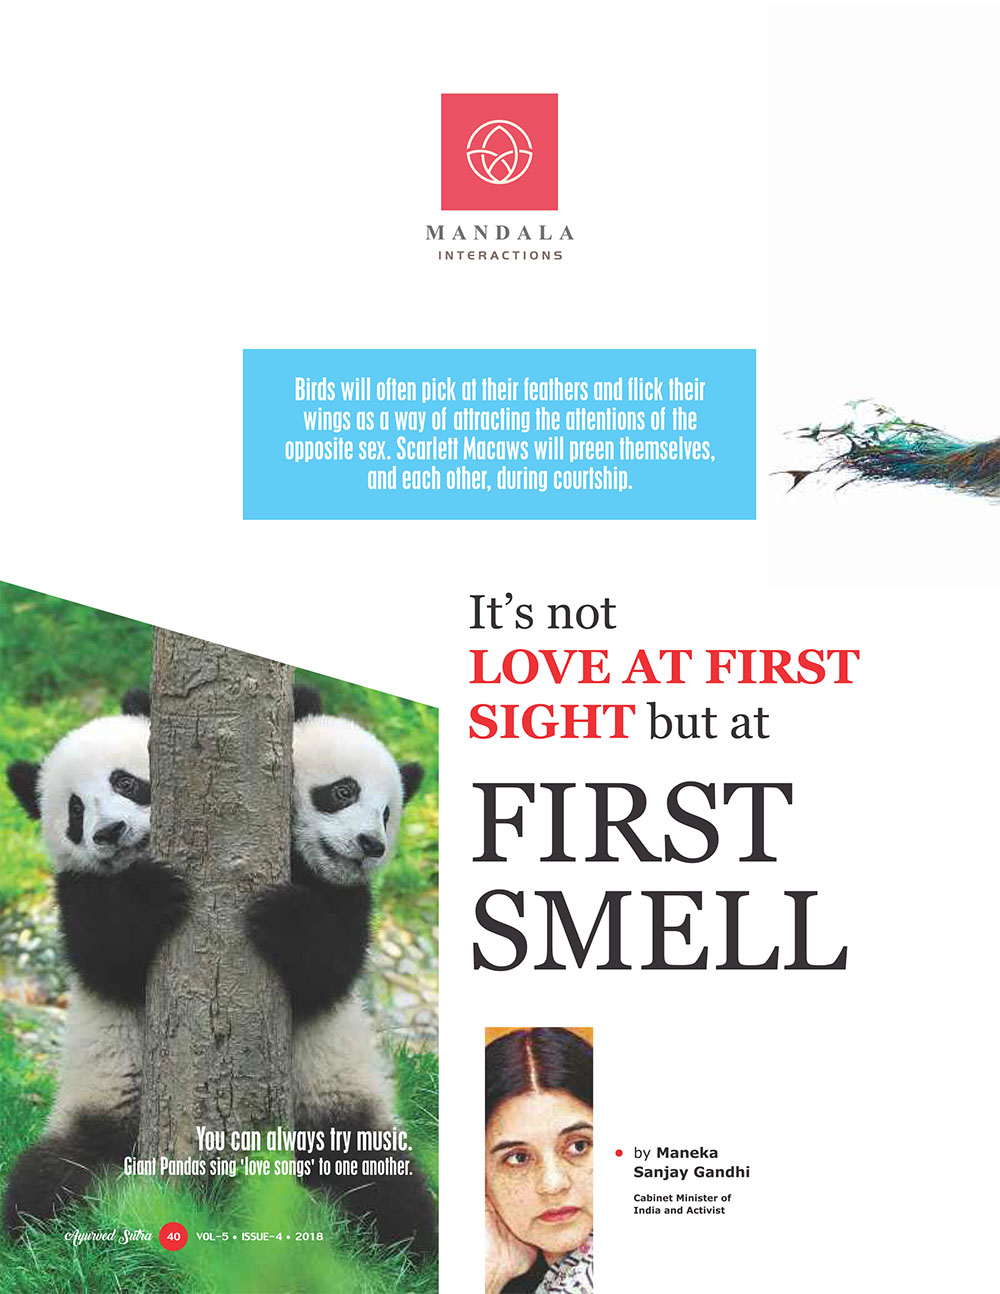 Ayurvedsutra Vol 05 issue 04 42 - It's not love at first sight but at first smell.